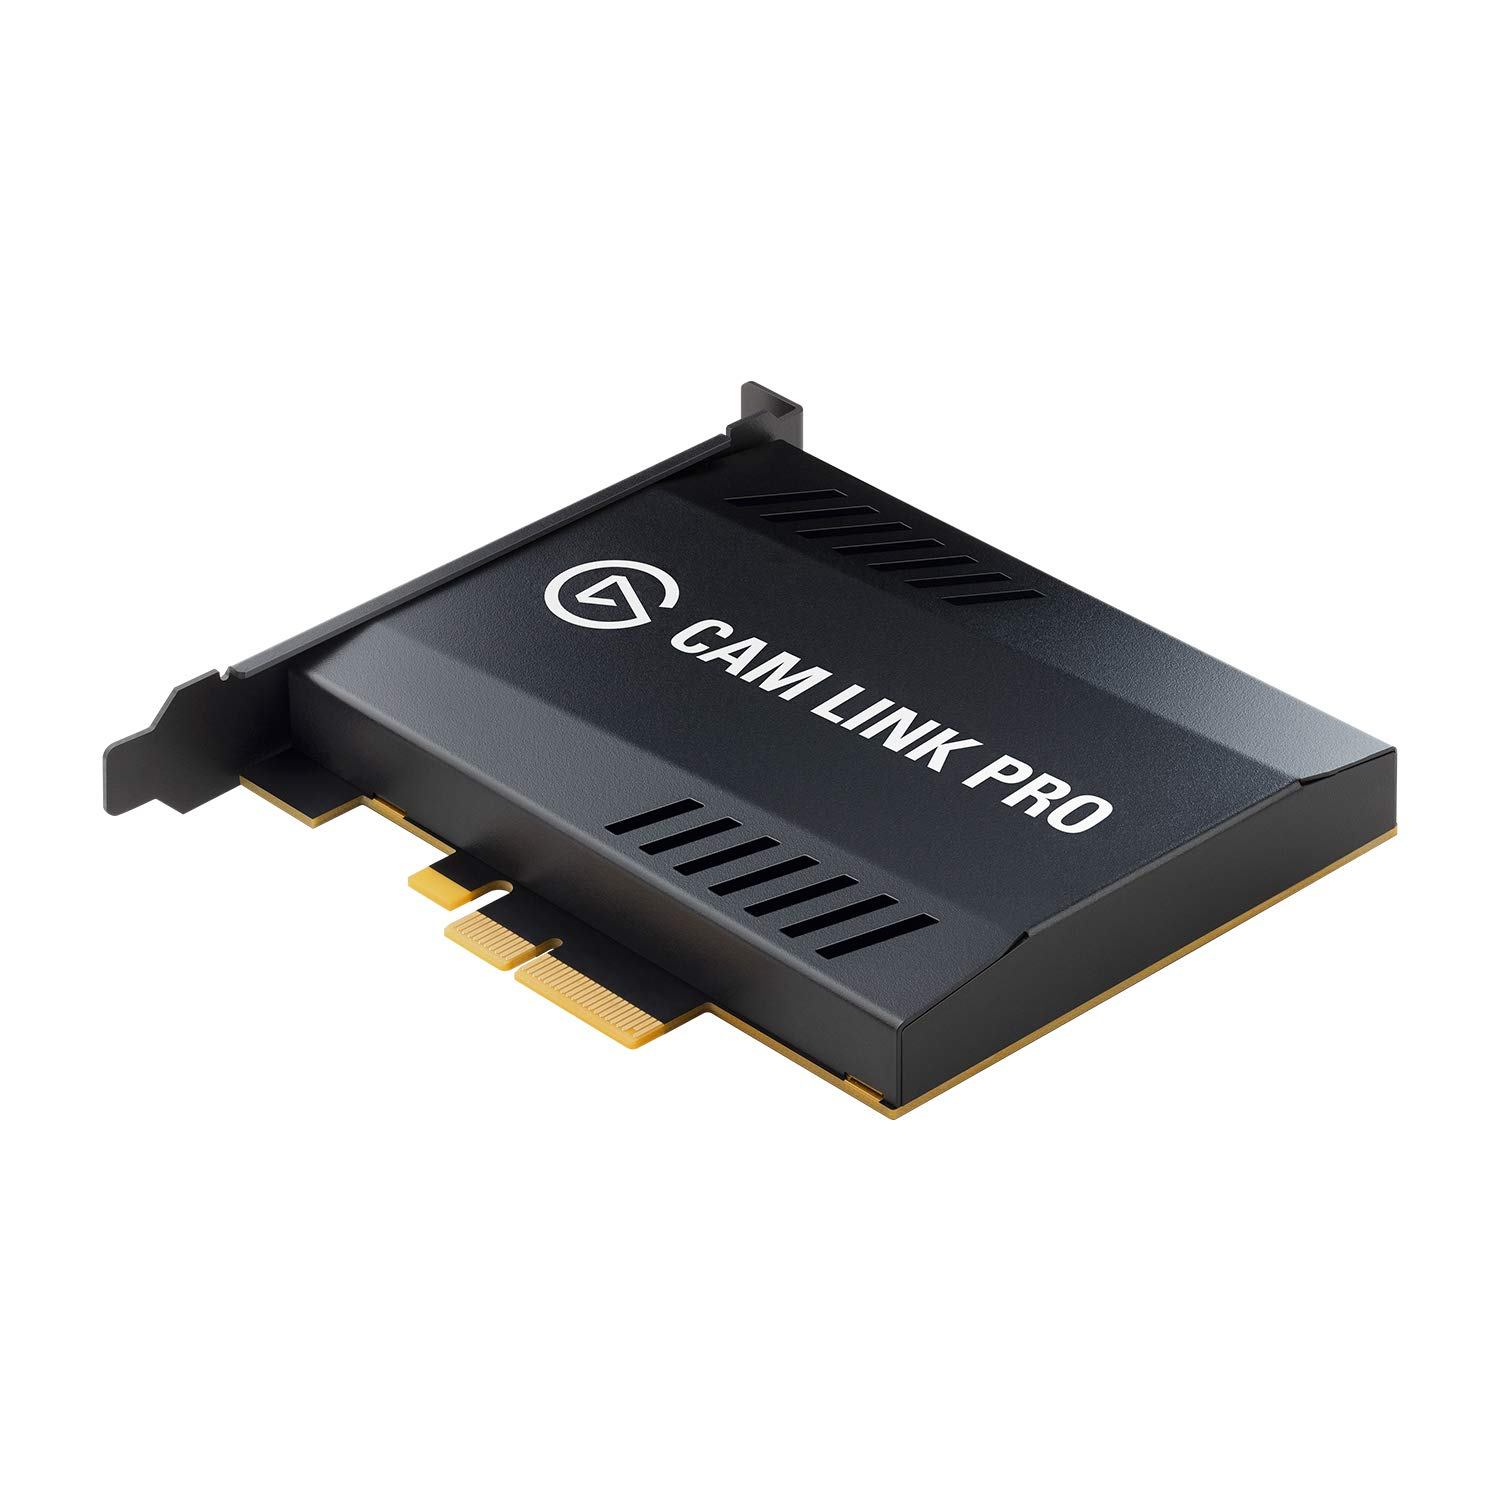 Elgato Cam Link Pro - PCIe Camera Capture Card, 4 HDMI inputs, 1080p60 Full HD, 4K30, Multiview, Streaming, Video conferencing, OBS, Zoom, etc.